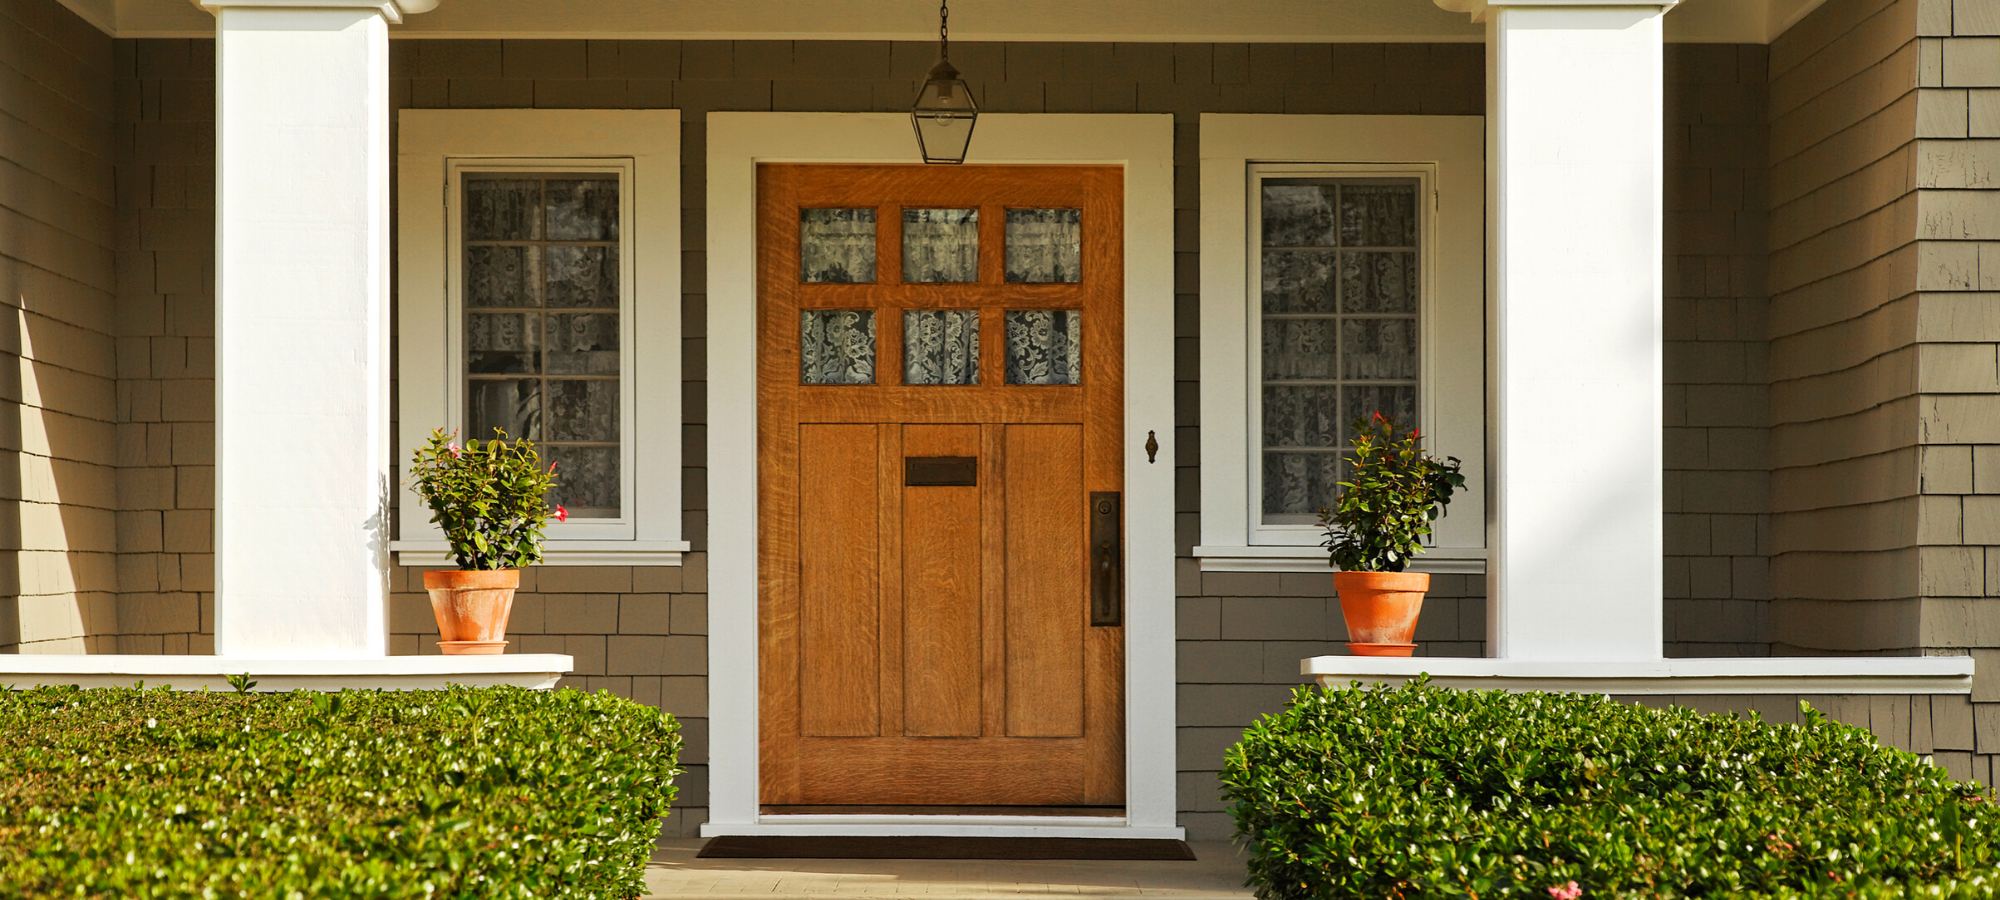 Preparing your Home to Sell: First Impressions